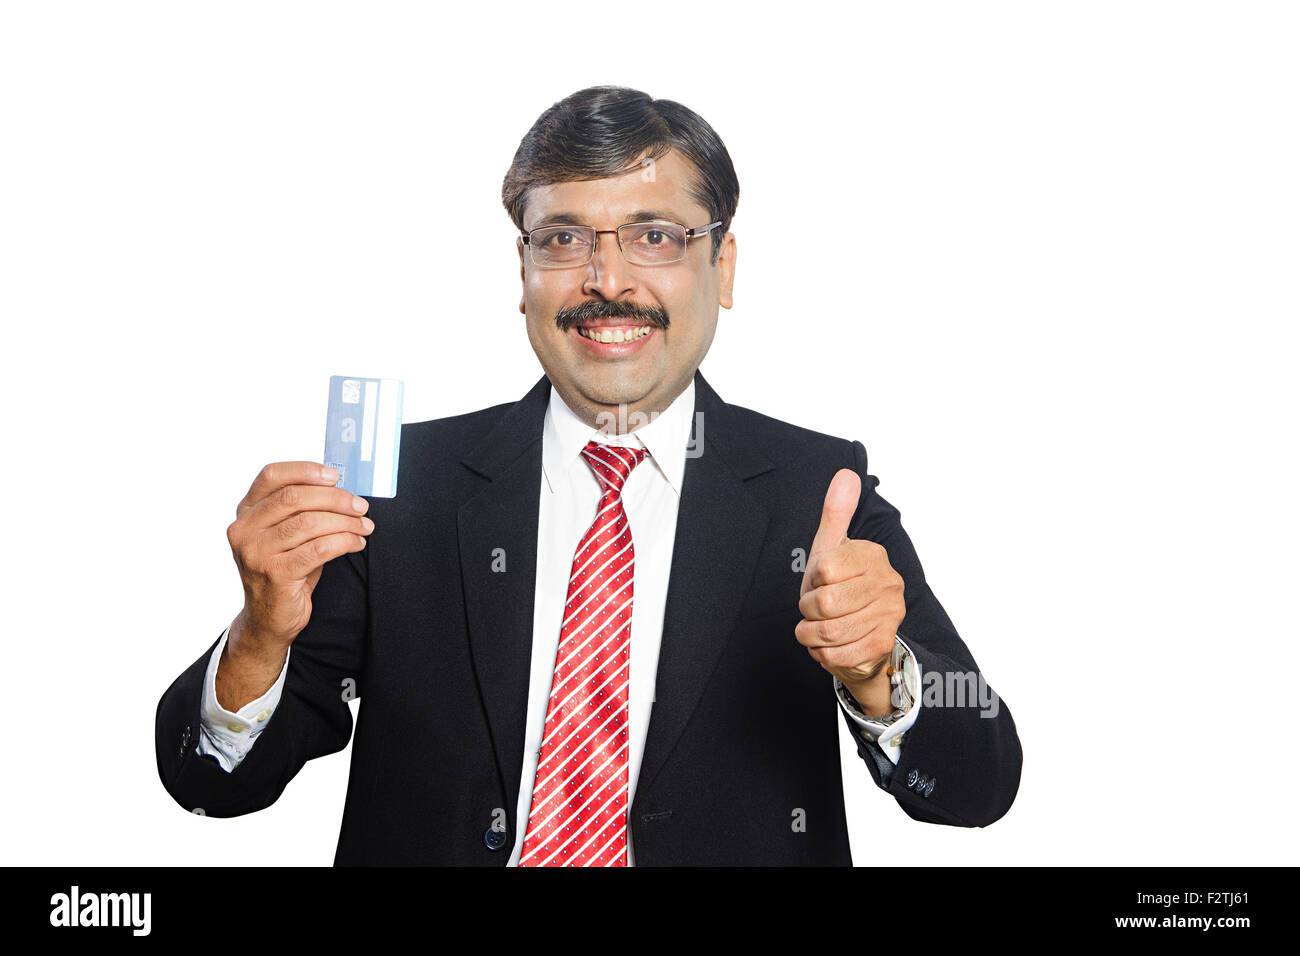 1 indian business man credit card showing thumbs up showing stock 1 indian business man credit card showing thumbs up showing reheart Choice Image